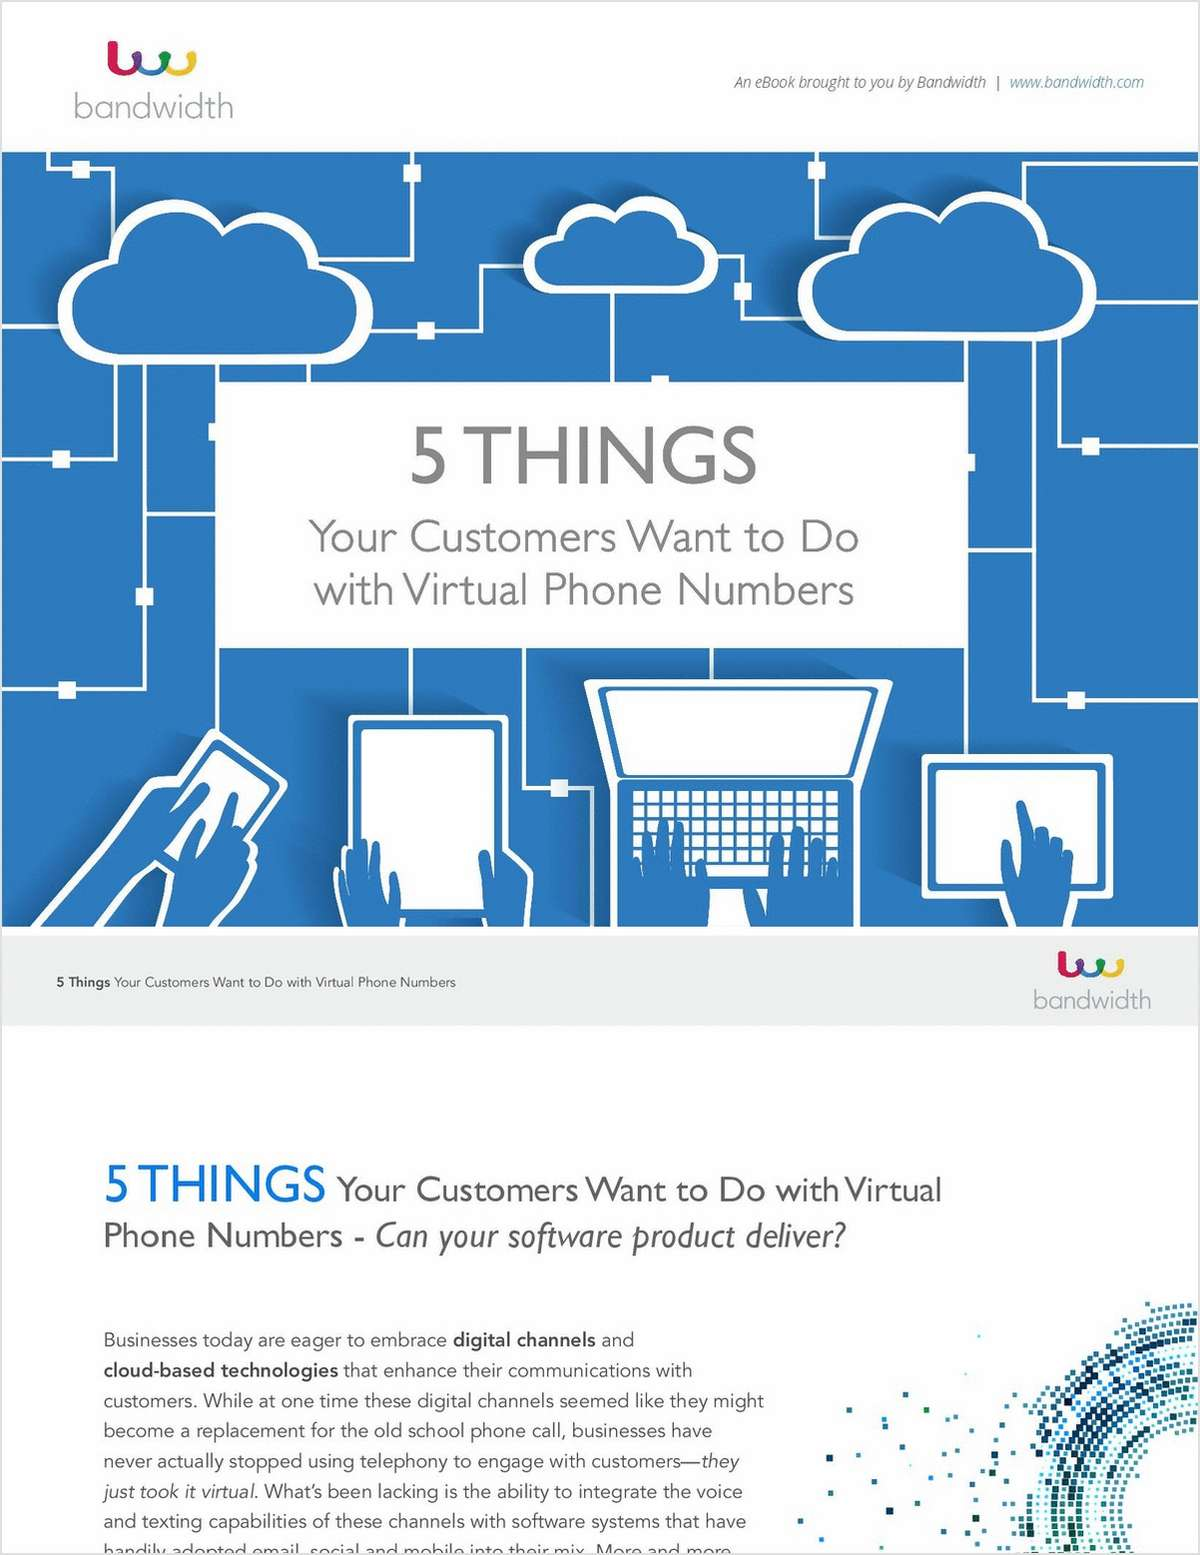 5 Things Your Customers Want to Do with Virtual Phone Numbers